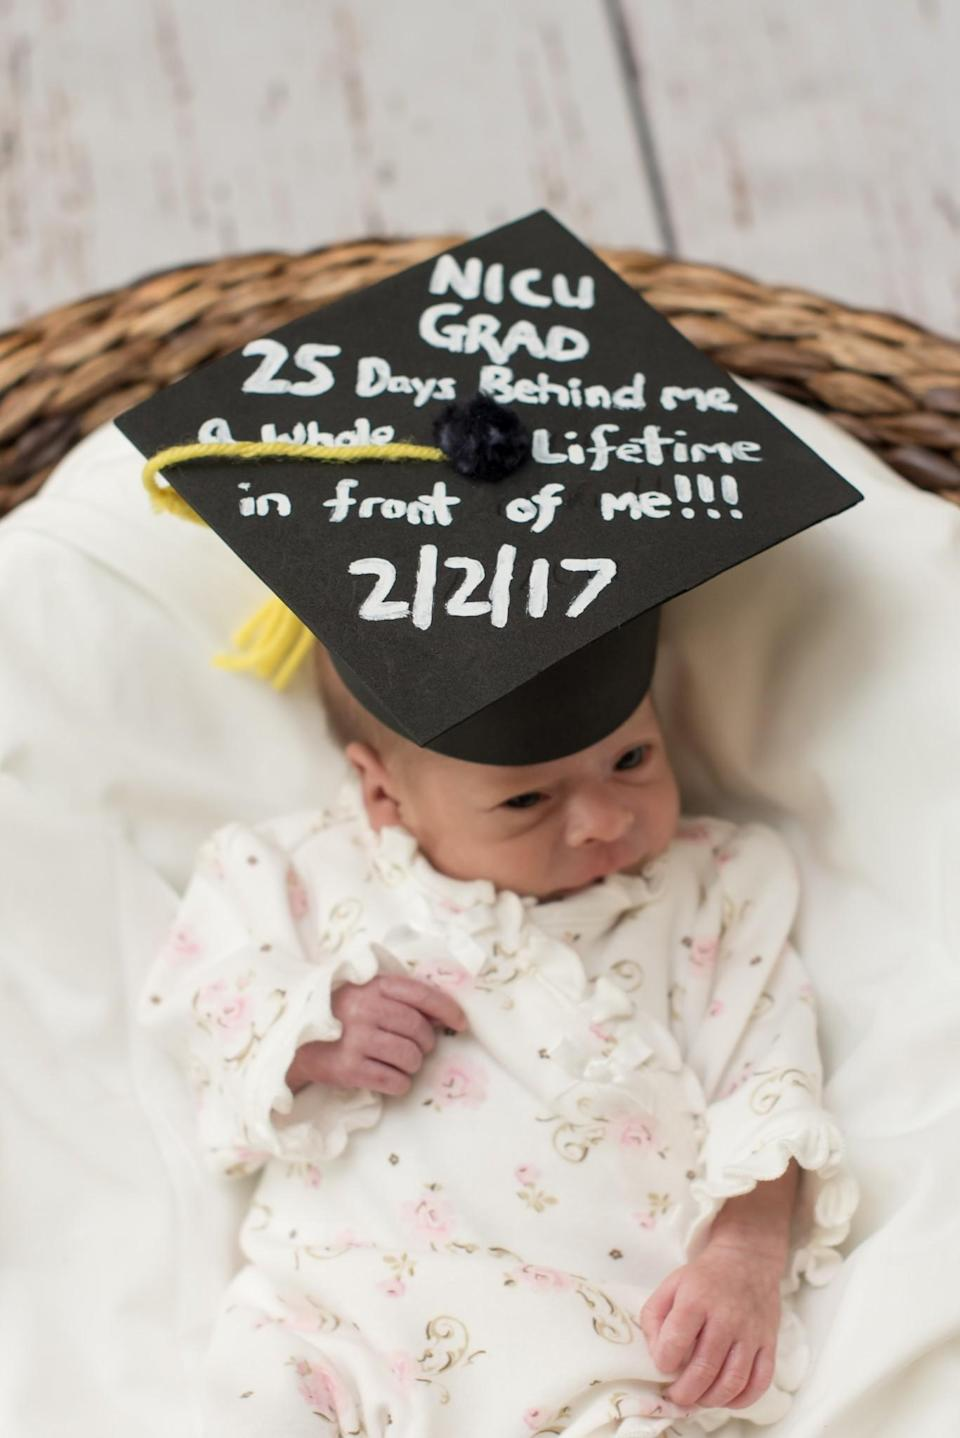 "<p>""NICU GRAD, 25 Days Behind Me, A Whole Lifetime In Front Of Me!! 2/2/17"" <em>(Photo via: <a rel=""nofollow noopener"" href=""https://www.bellababyphotography.com/"" target=""_blank"" data-ylk=""slk:Bella Baby Photography"" class=""link rapid-noclick-resp"">Bella Baby Photography</a>)</em> </p>"